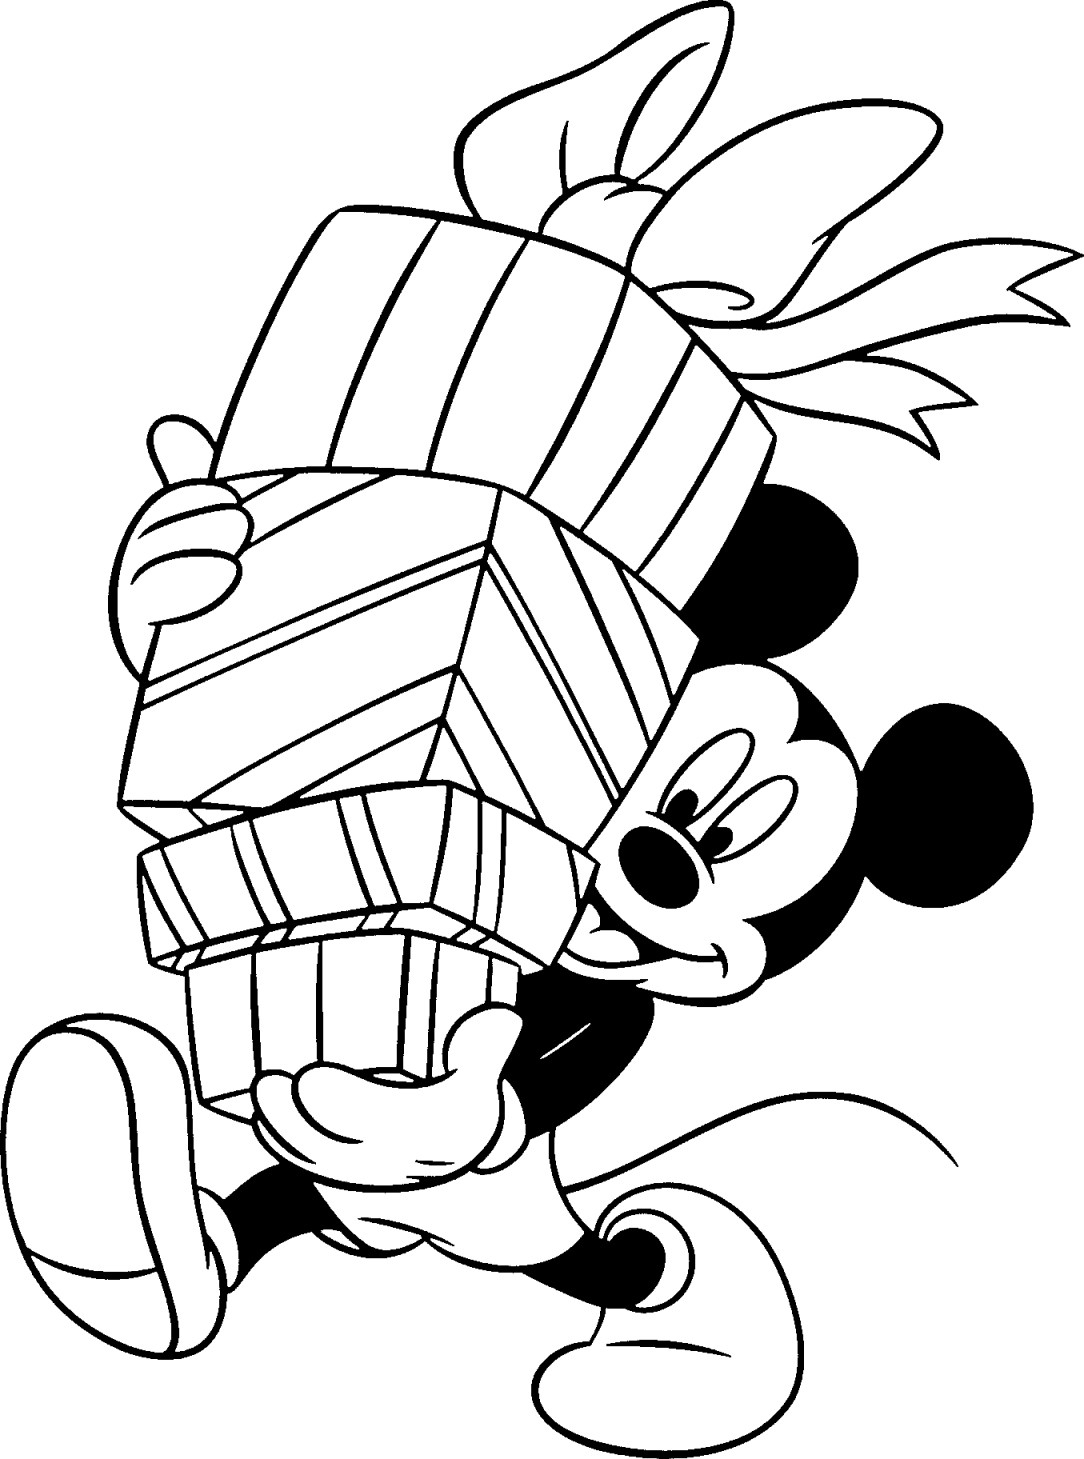 Christmas Coloring Pages To Print Free Free Disney Christmas Printable Coloring Pages For Kids Honey Lime